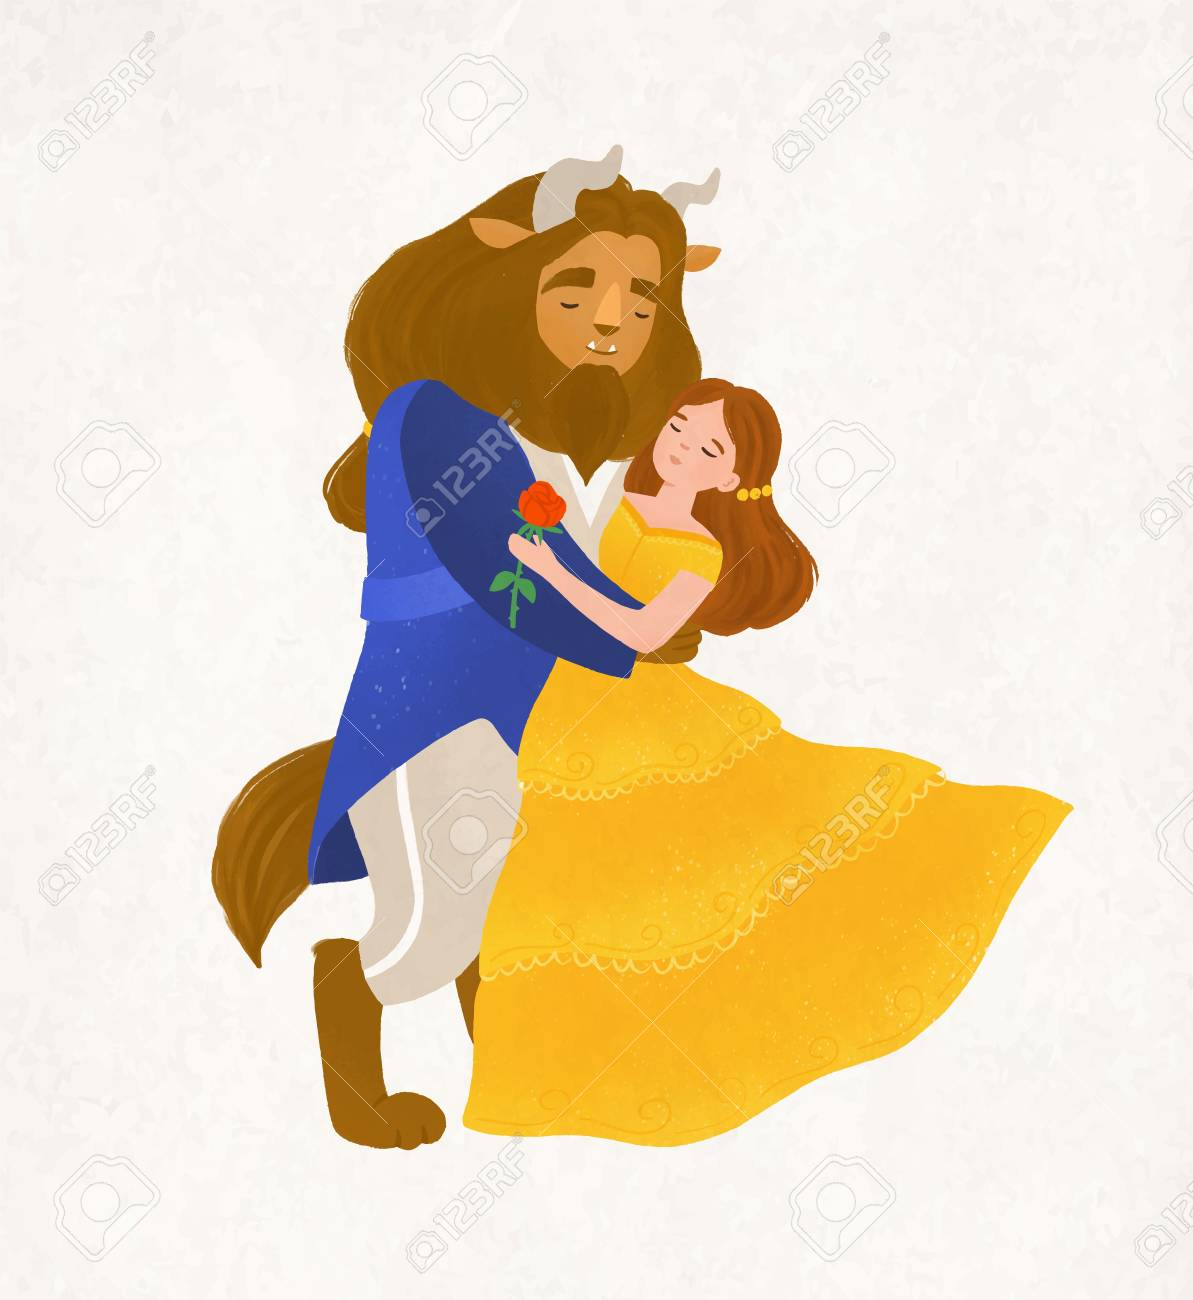 Beauty and Beast dancing waltz. Young woman and bewitched creature from magic tale. Adorable fairytale characters isolated on white background. Colorful vector illustration in flat cartoon style - 110250692